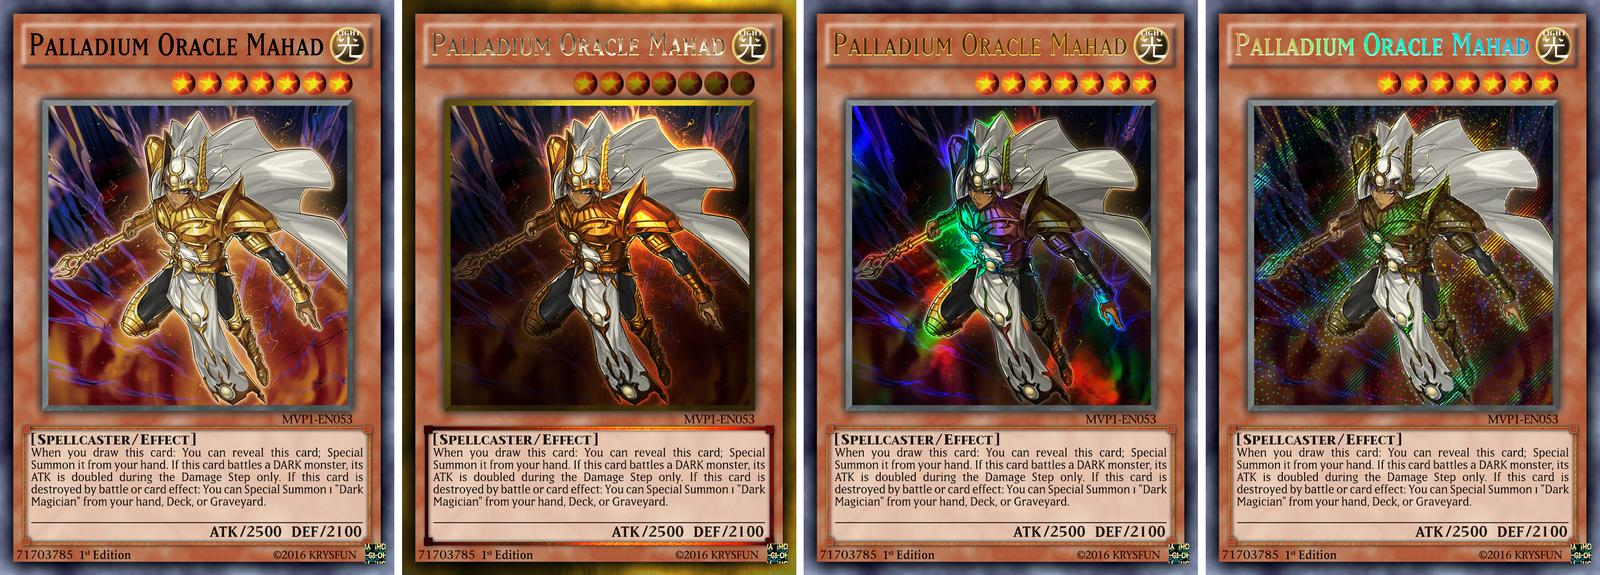 yu gi oh  What is the card that other Yugi draw in the